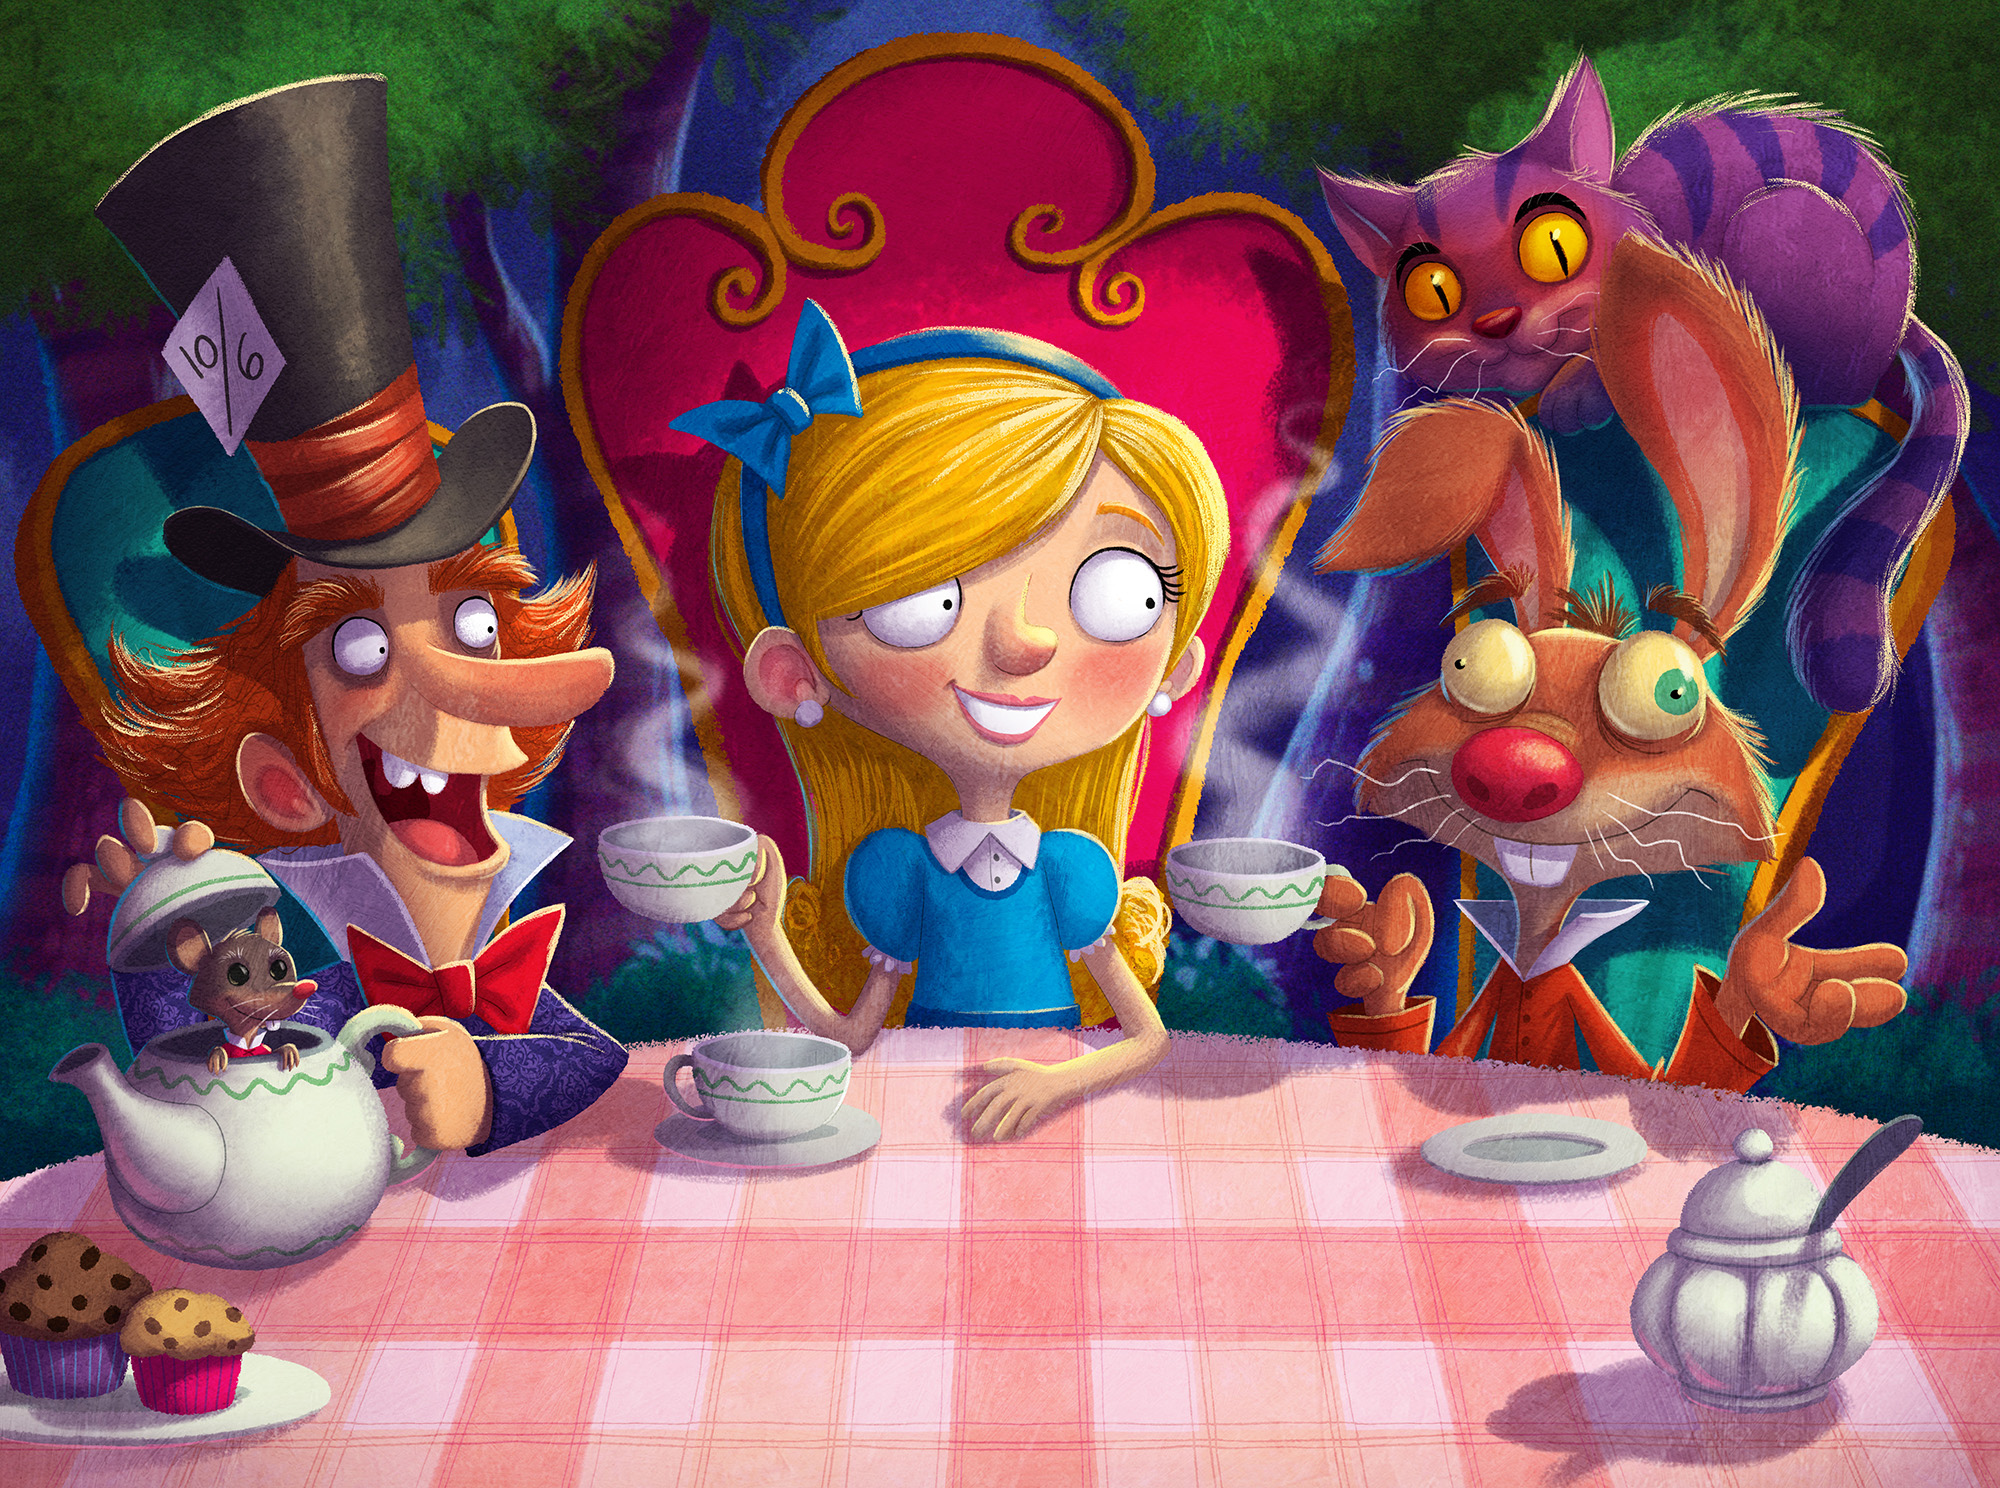 2D Alice in Wonderland Book Cover Illustration